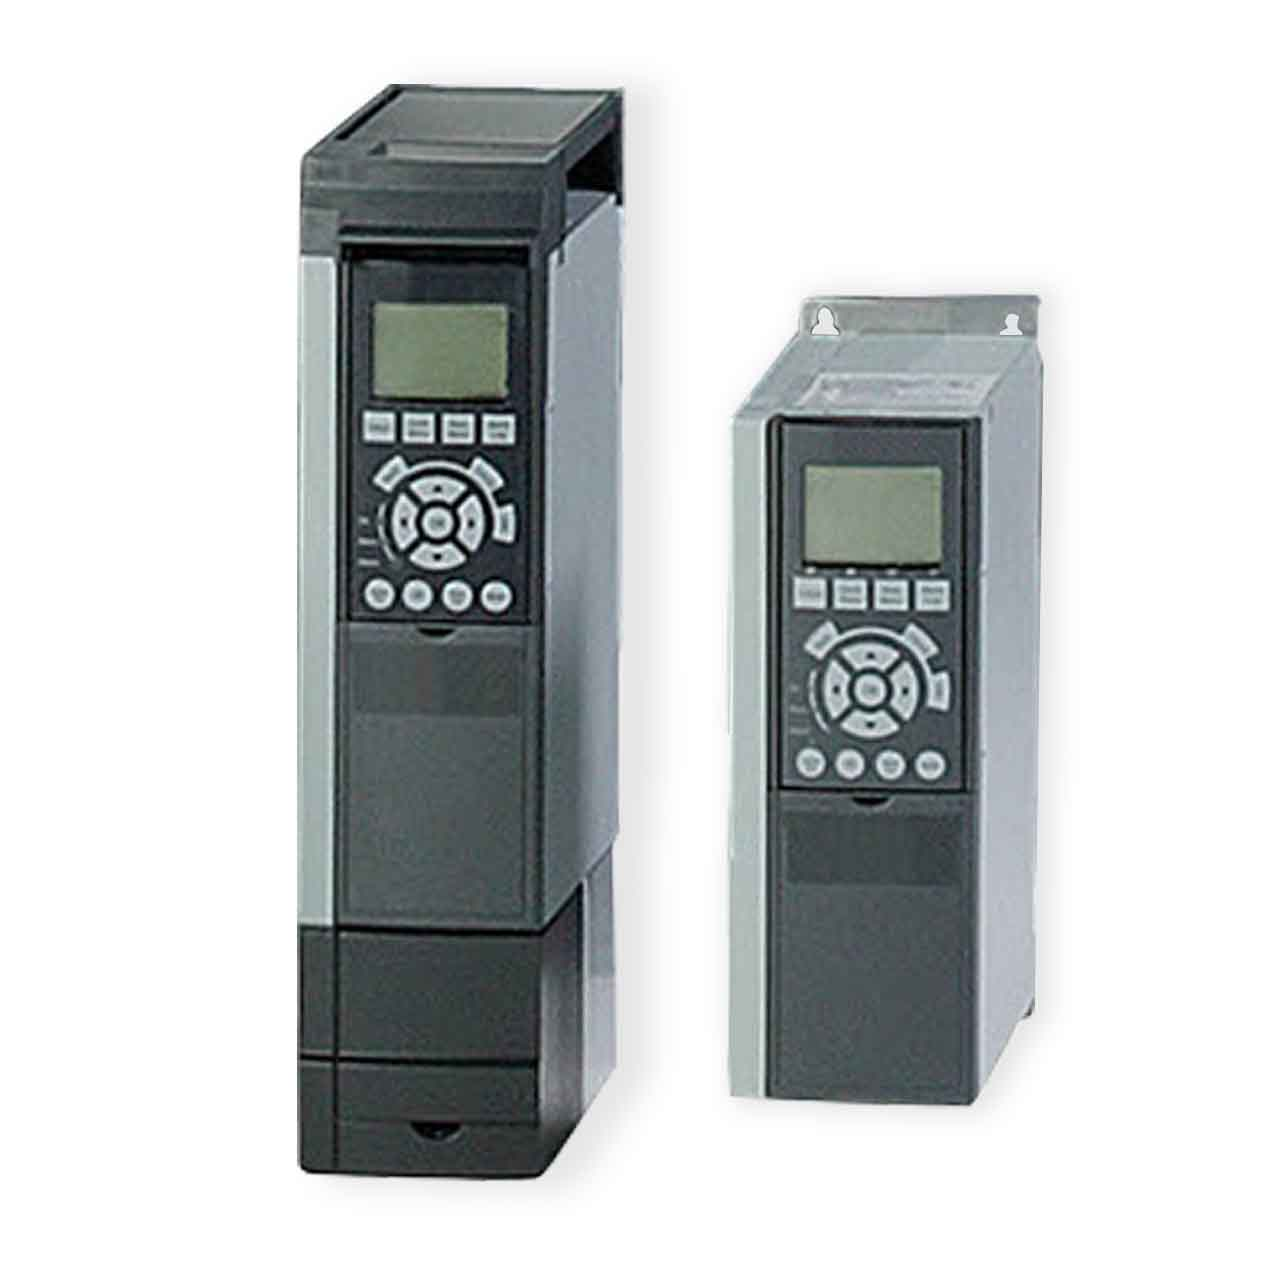 small resolution of pentek intellidrive xl vfd nema 3r enclosure 230v 24 2 88a 1ph variable frequency drives brochures on vfd wiring for dummies